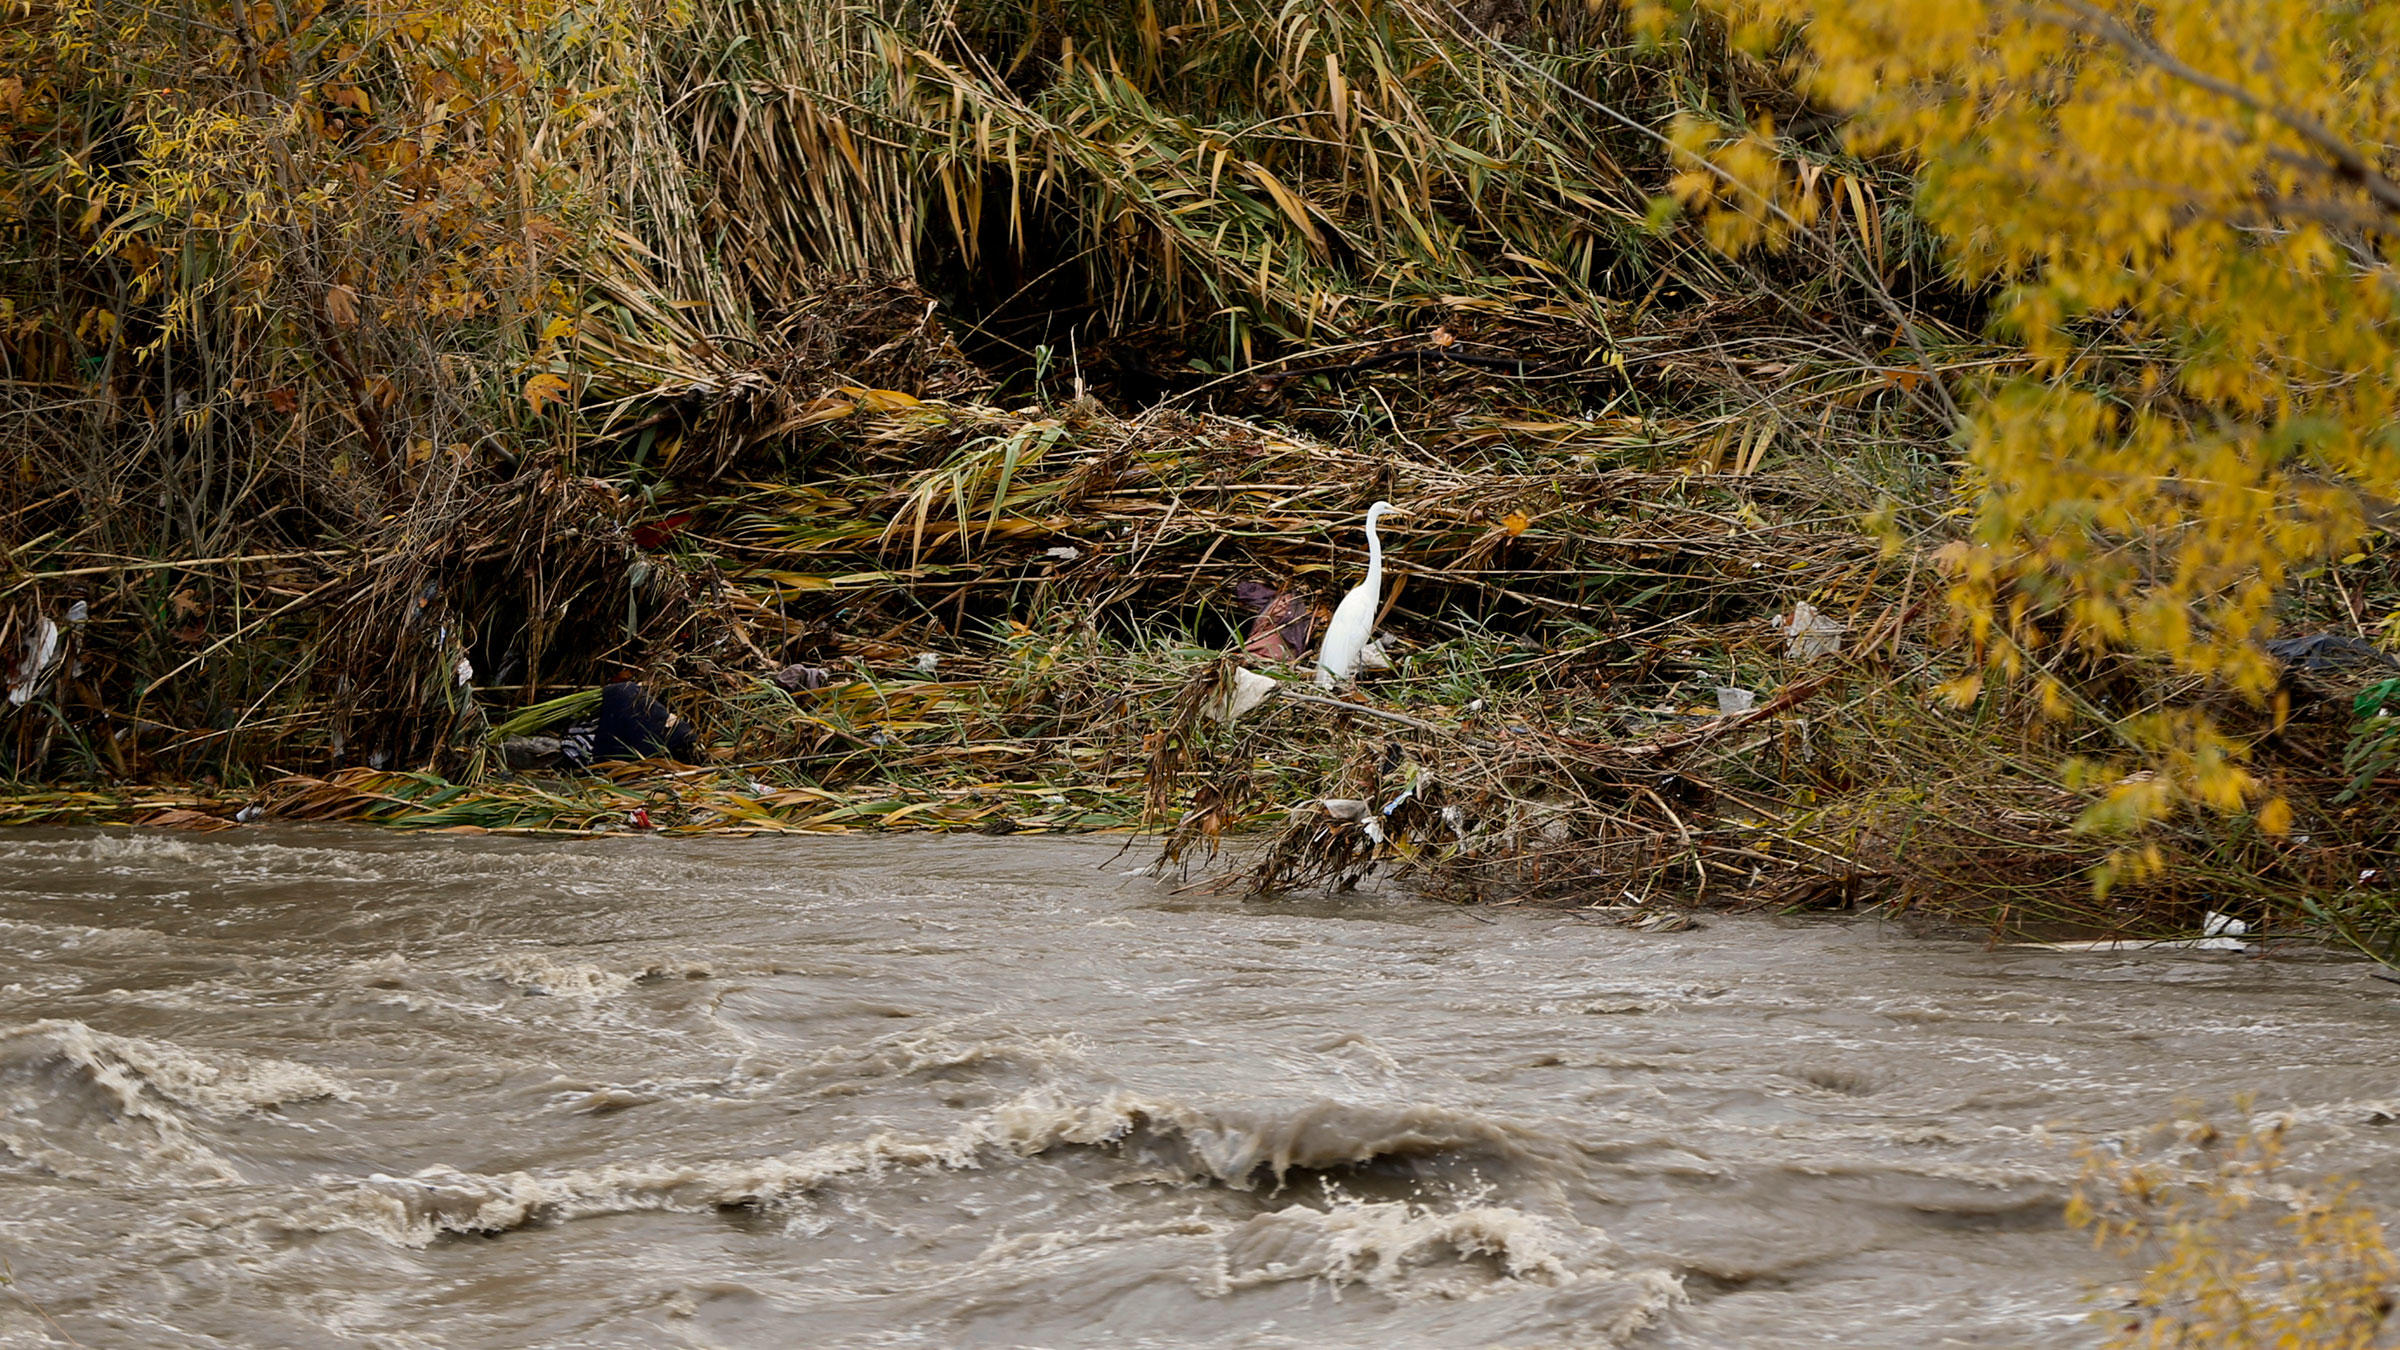 A Great Egret beside the Los Angeles River after torrential rains this month. Severe flooding, wildfires, mudslides, tornadoes, and droughts have been affecting many parts of the world. Damian Dovarganes/AP